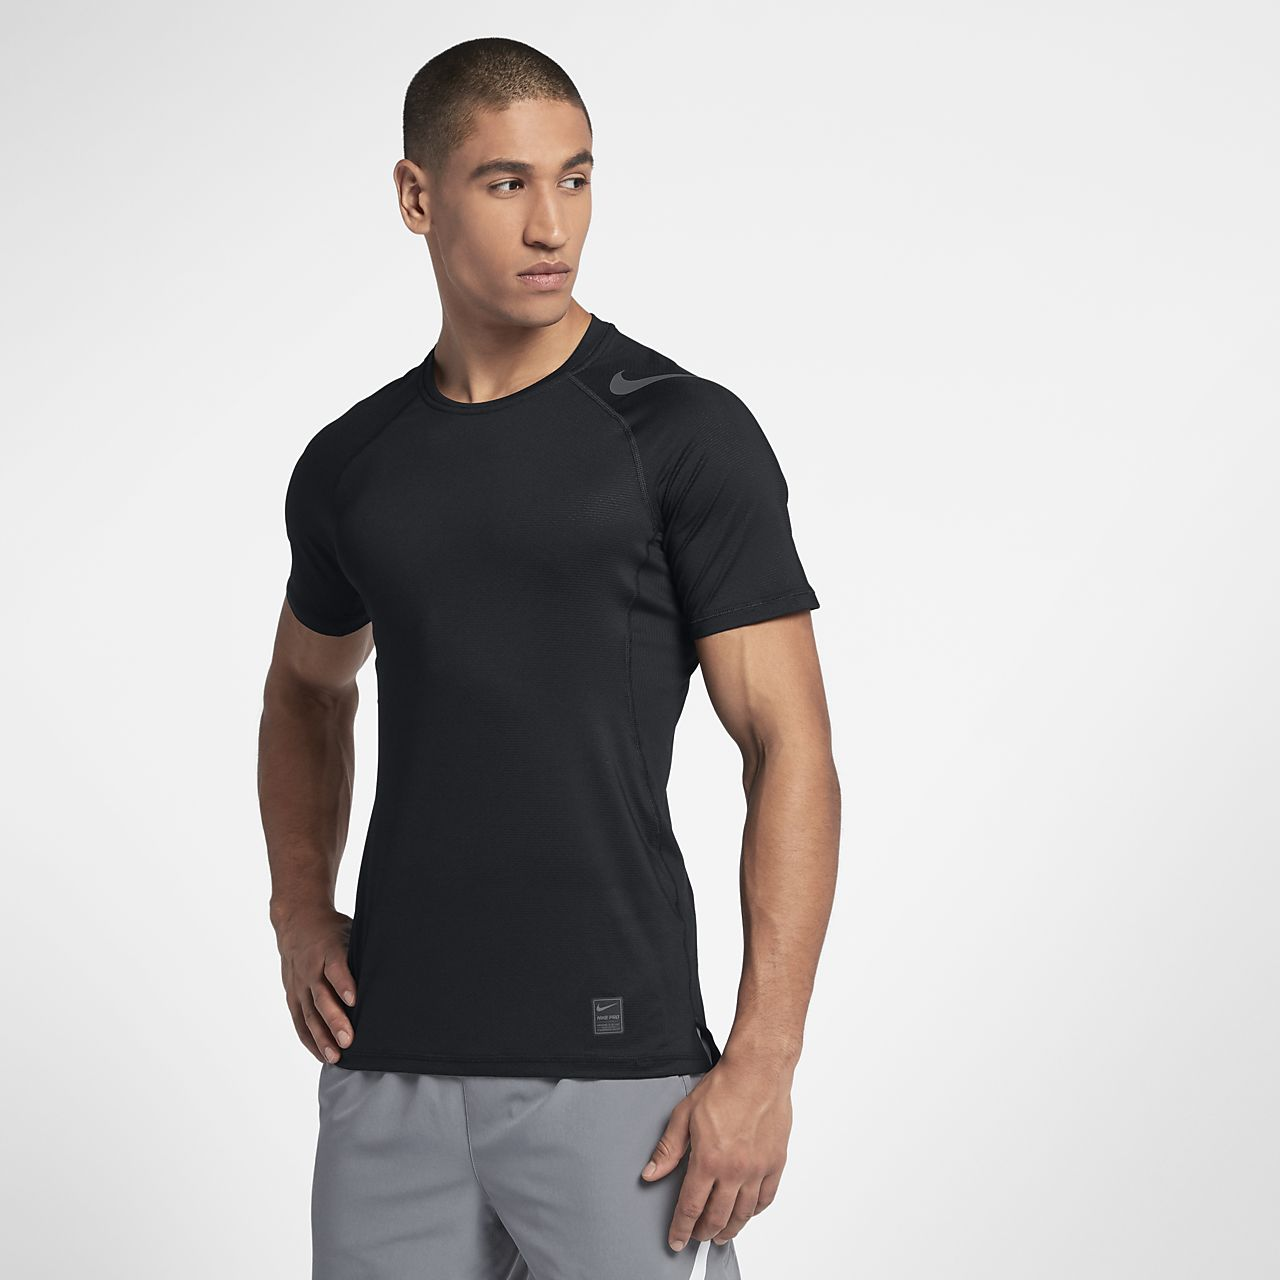 bcfc23c089 Nike Pro HyperCool Men's Short-Sleeve Training Top. Nike.com AU